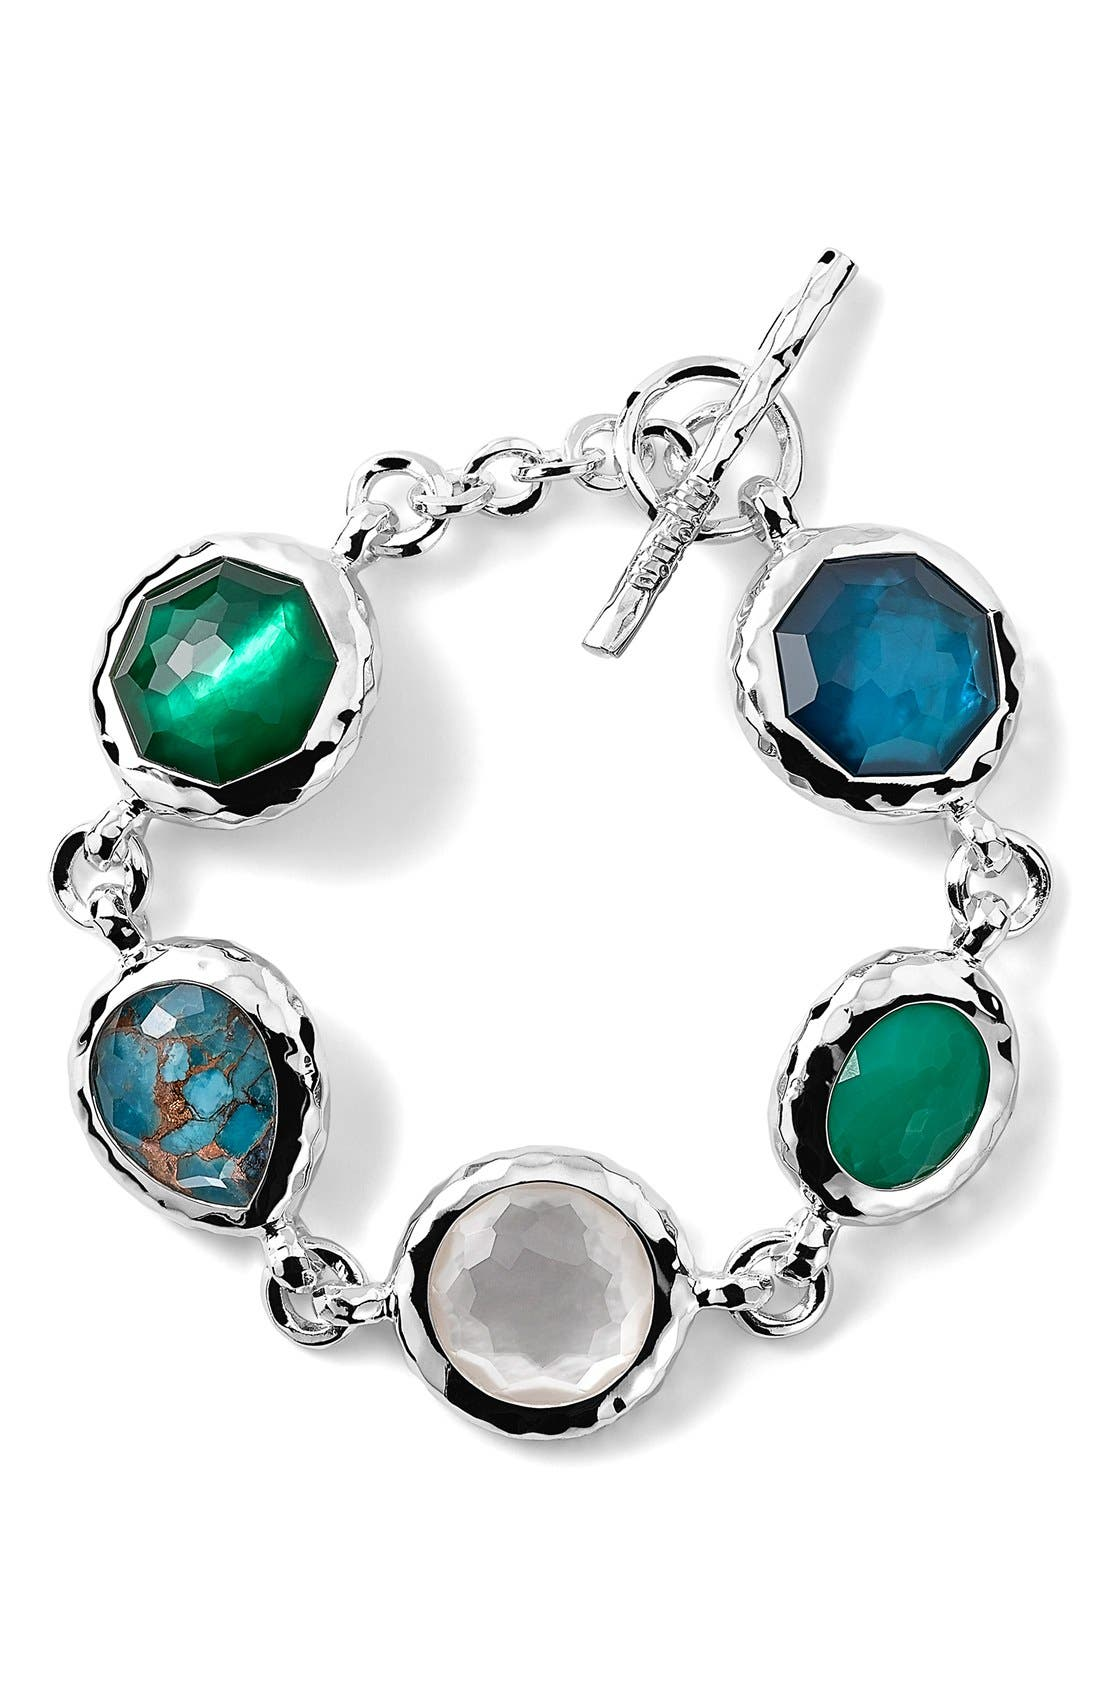 Alternate Image 1 Selected - Ippolita 'Wonderland' 5-Stone Toggle Bracelet (Nordstrom Exclusive)